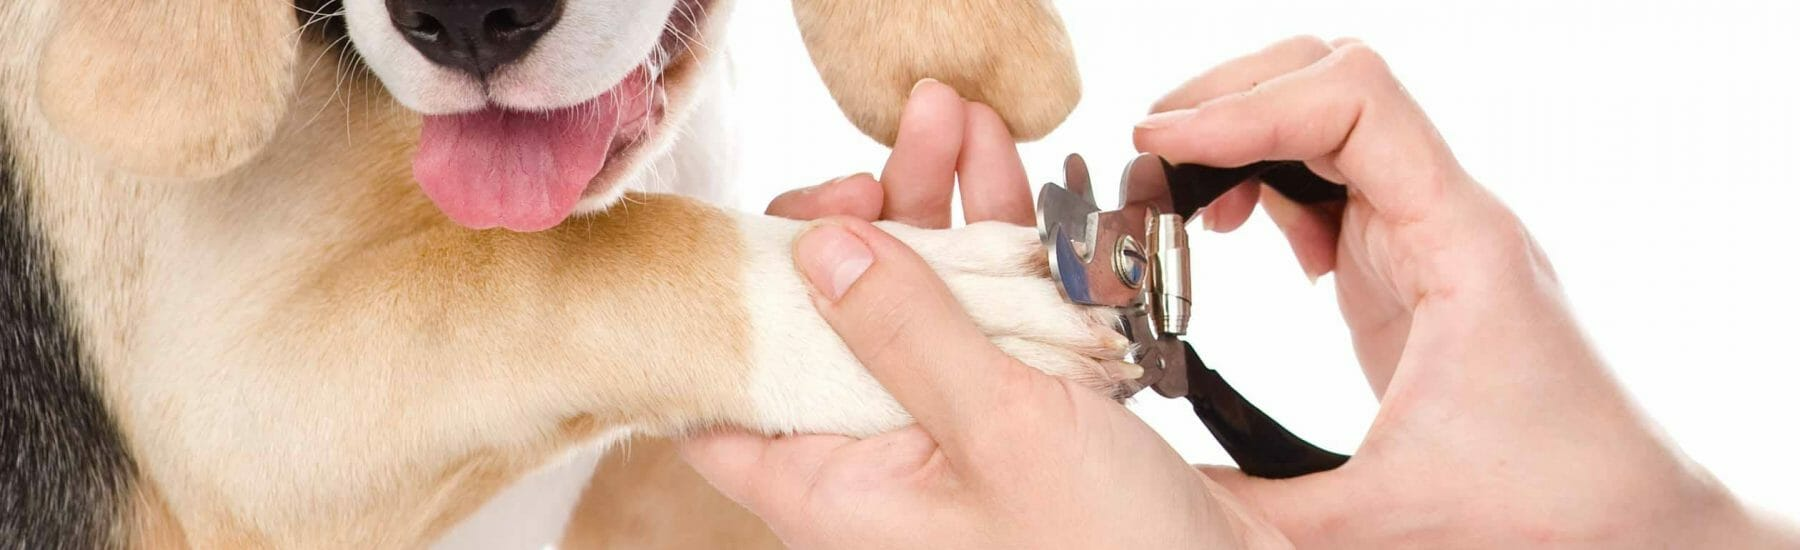 A close up of a dog getting his nails trimmed